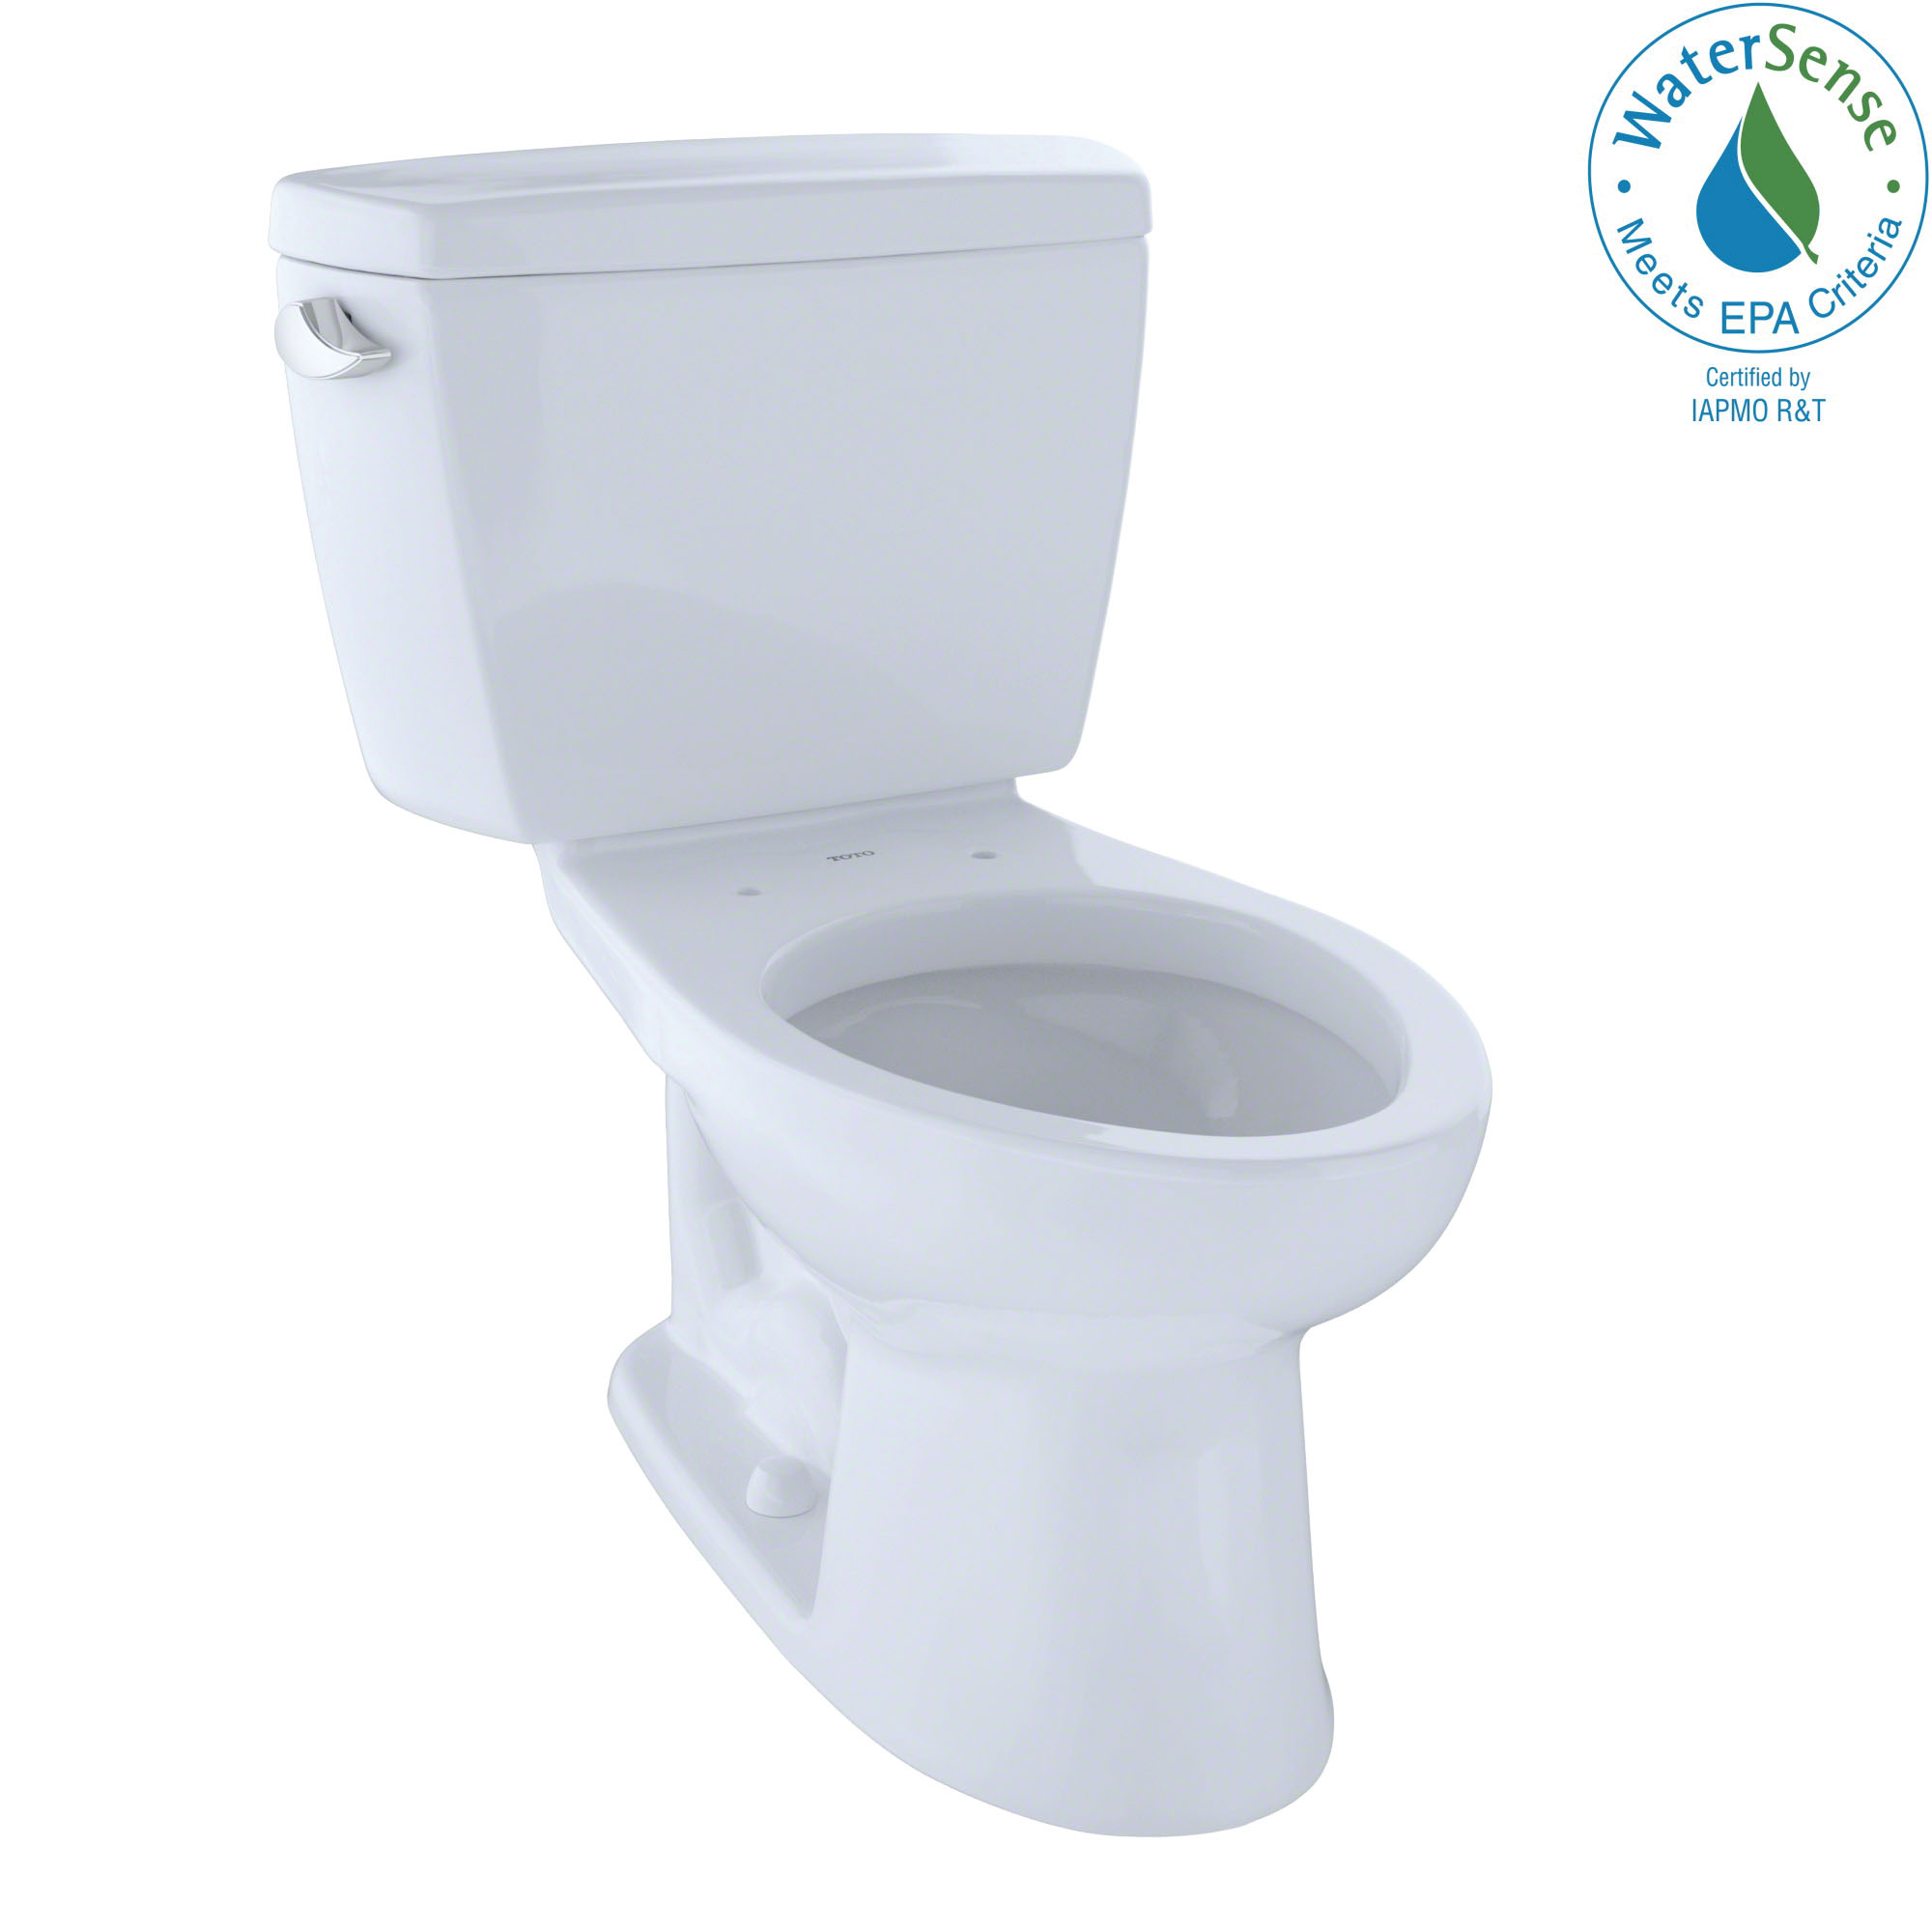 Toto® CST744EF.10#01 2-Piece Universal Height Close Coupled Toilet With Left-Hand Chrome Trip Lever, Eco Drake®, Elongated Bowl, 17-1/4 in H Rim, 10 in Rough-In, 1.28 gpf, Cotton White, Import